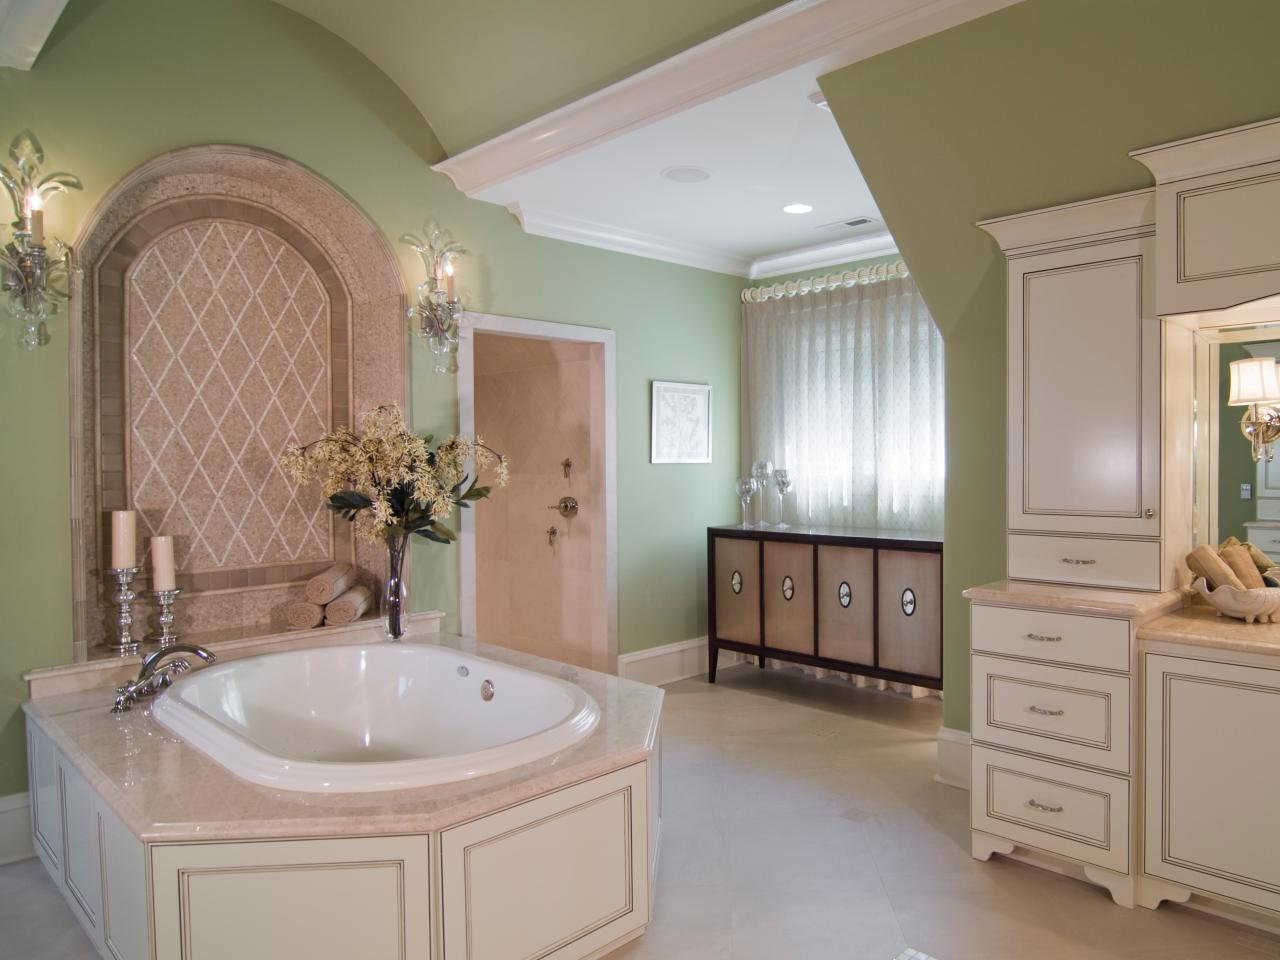 How to improve master bathroom designs in better way for Master bathroom design ideas